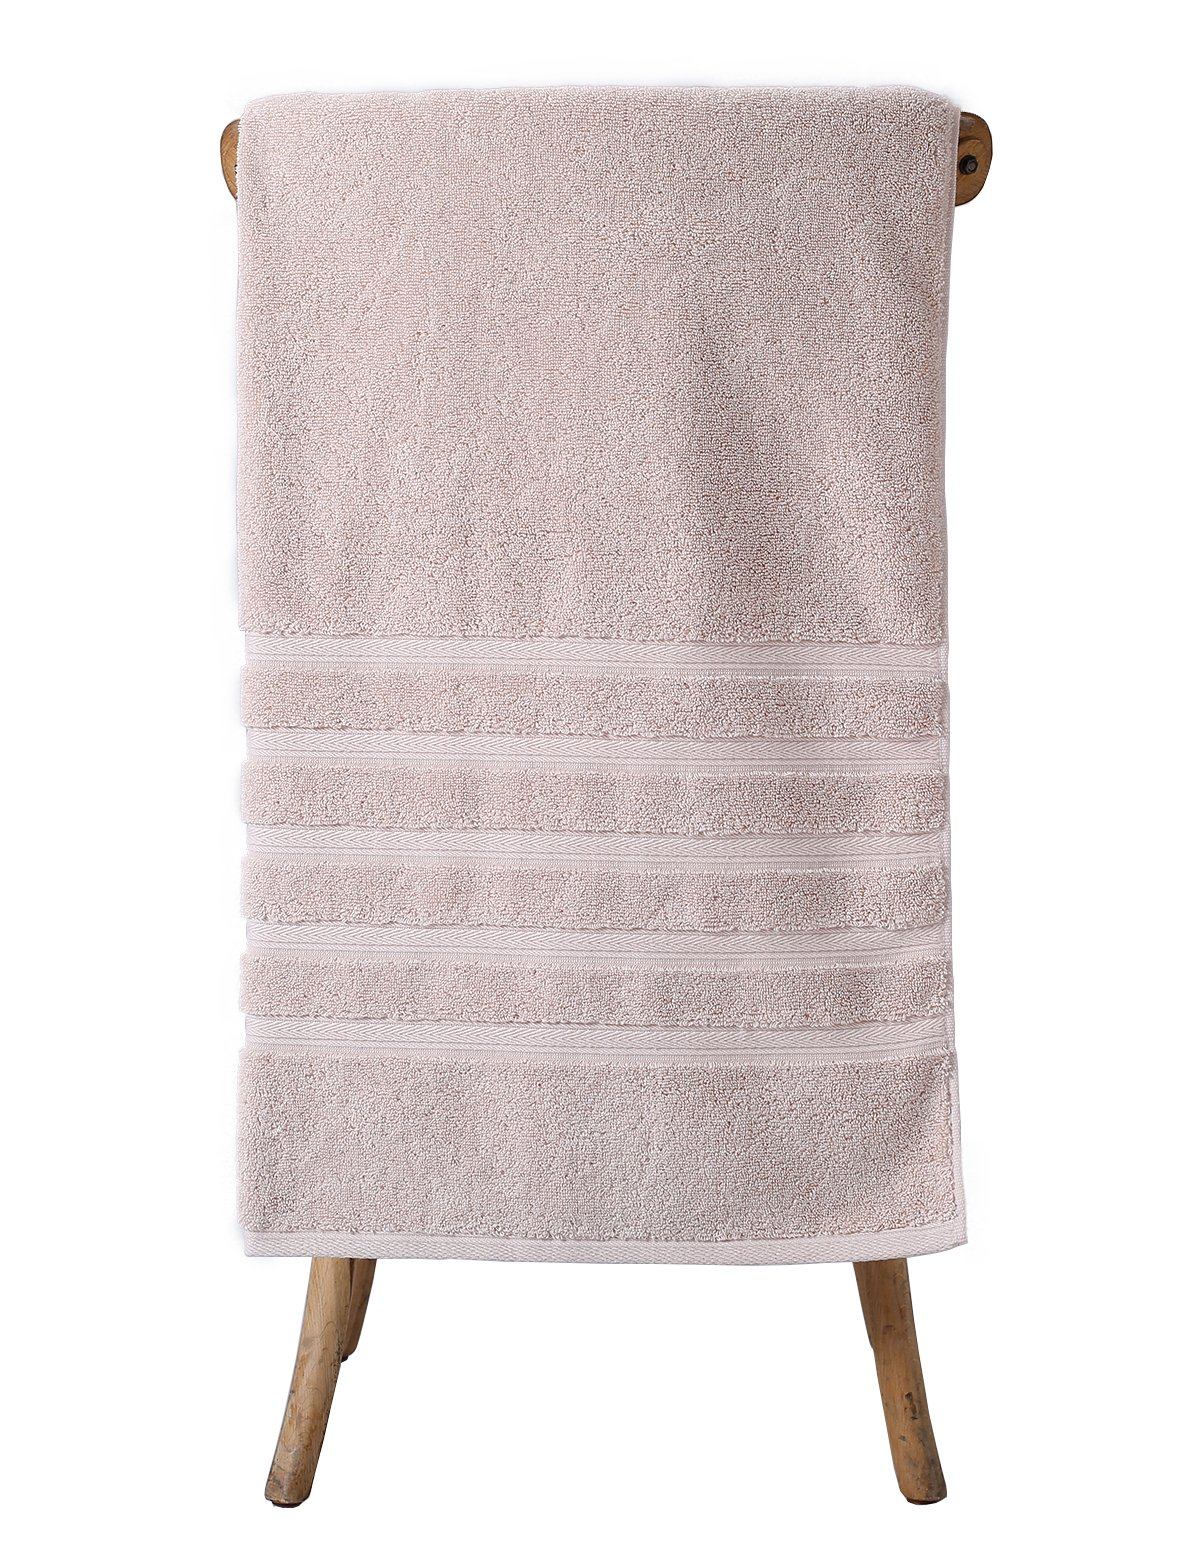 Metrekey Large Bath Towel Luxury Hotel Spa Collection Absorbent Bathroom Towels 35x70 inches Soft Clearance Organic 100% Cotton Thick Ultra Oversized Khaki